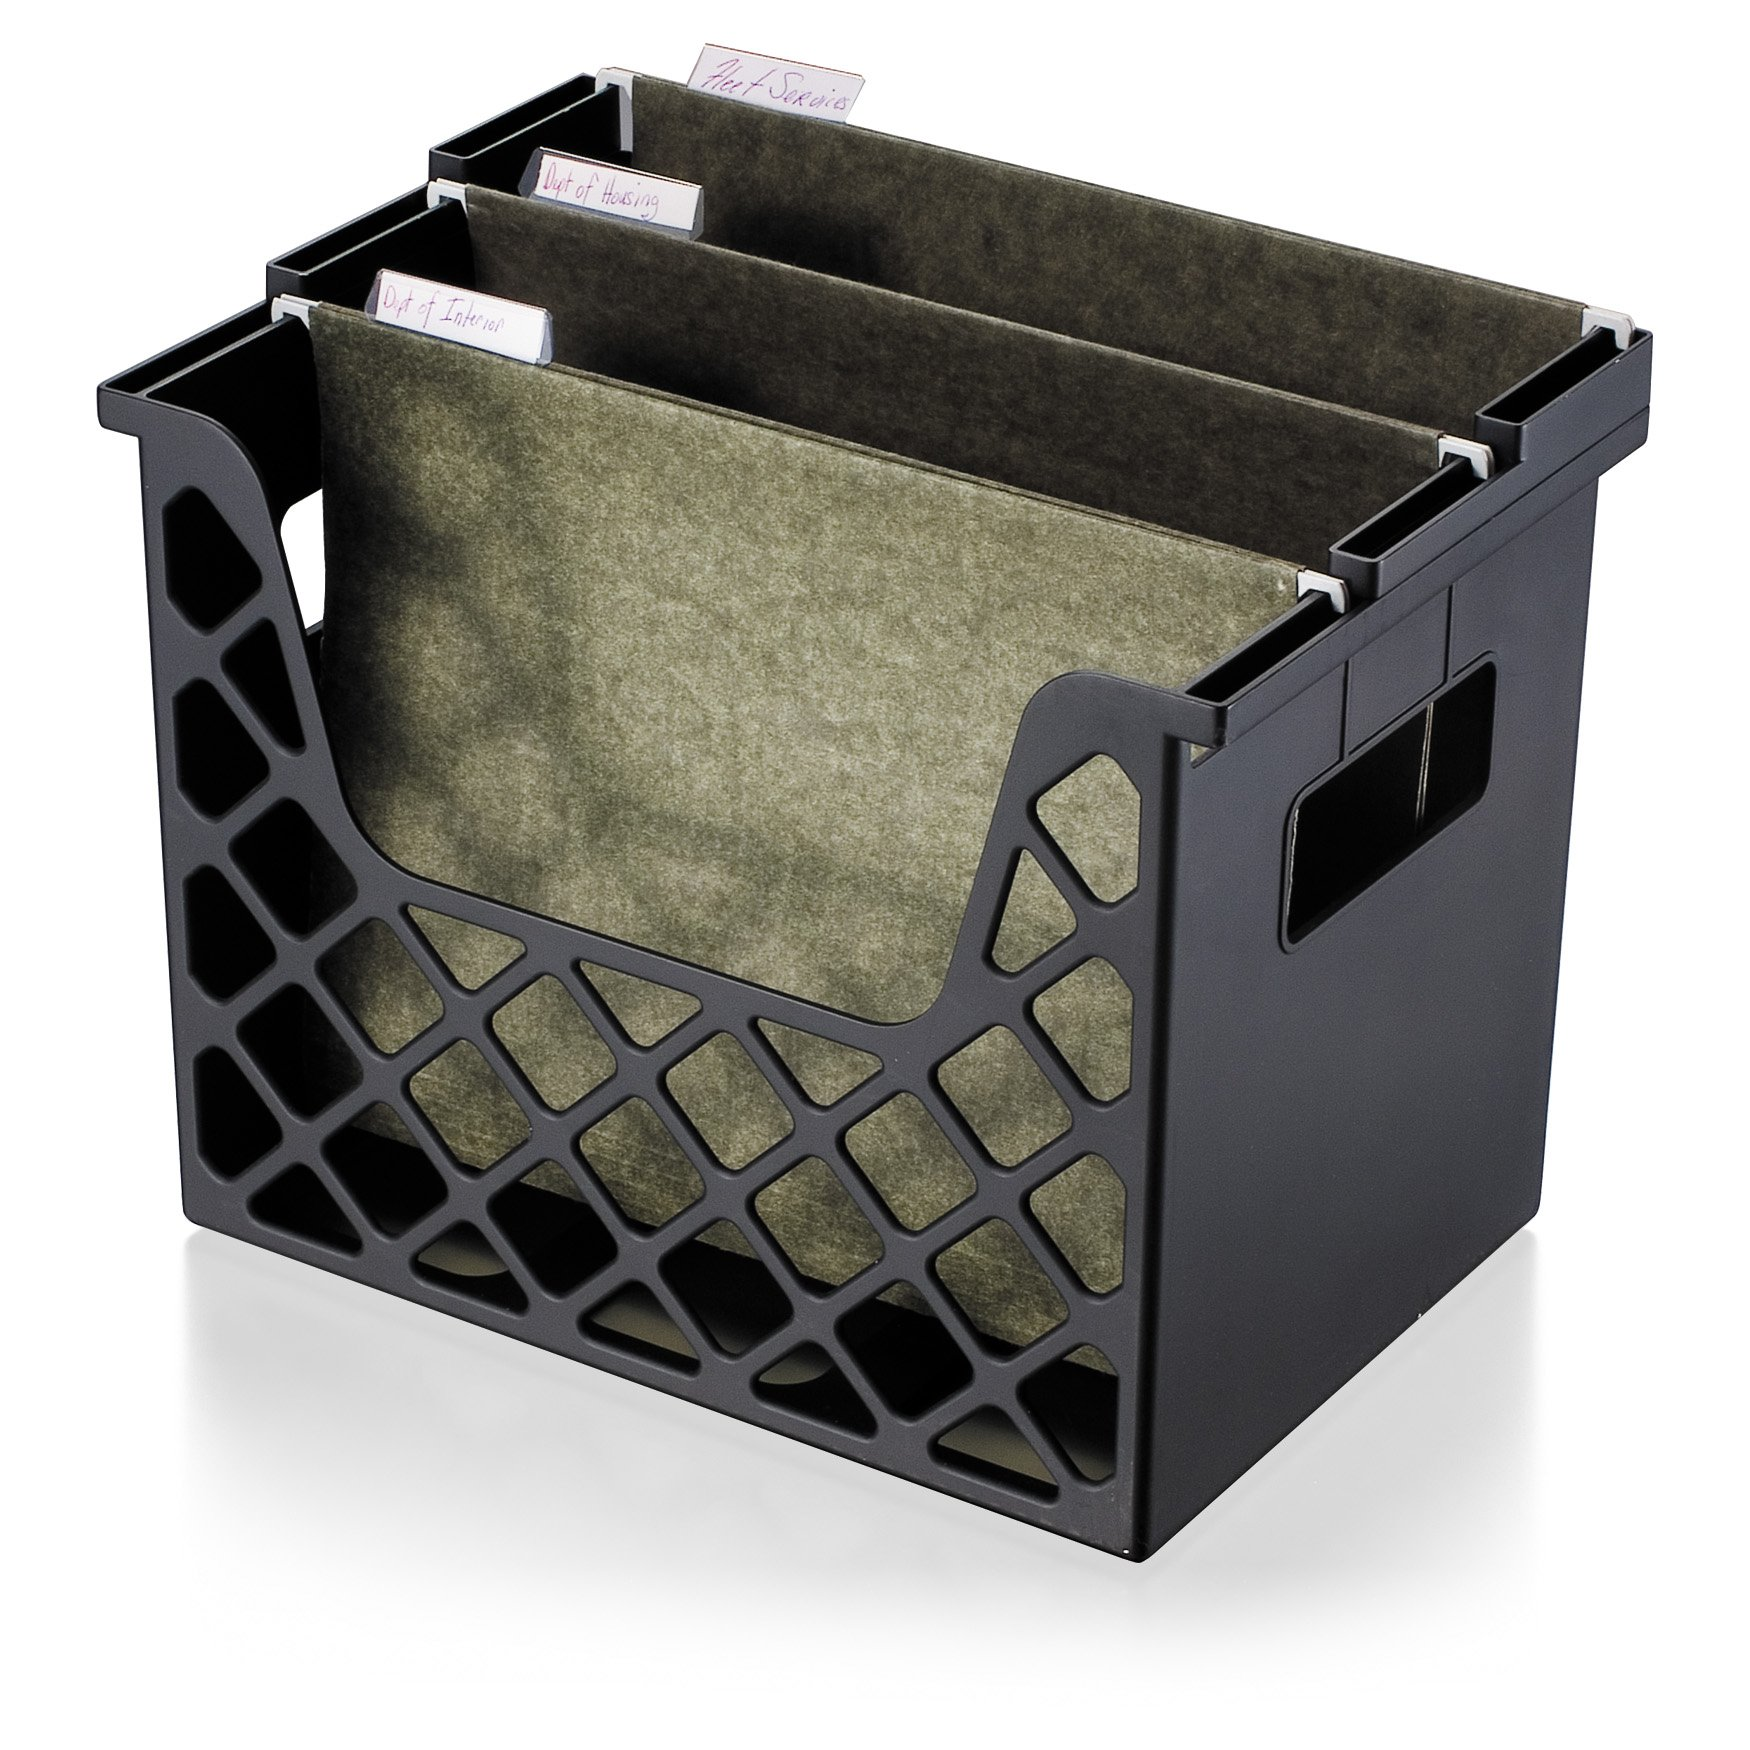 OfficemateOIC Recycled Desktop File Organzier, Black, 1 Organizer (26162)